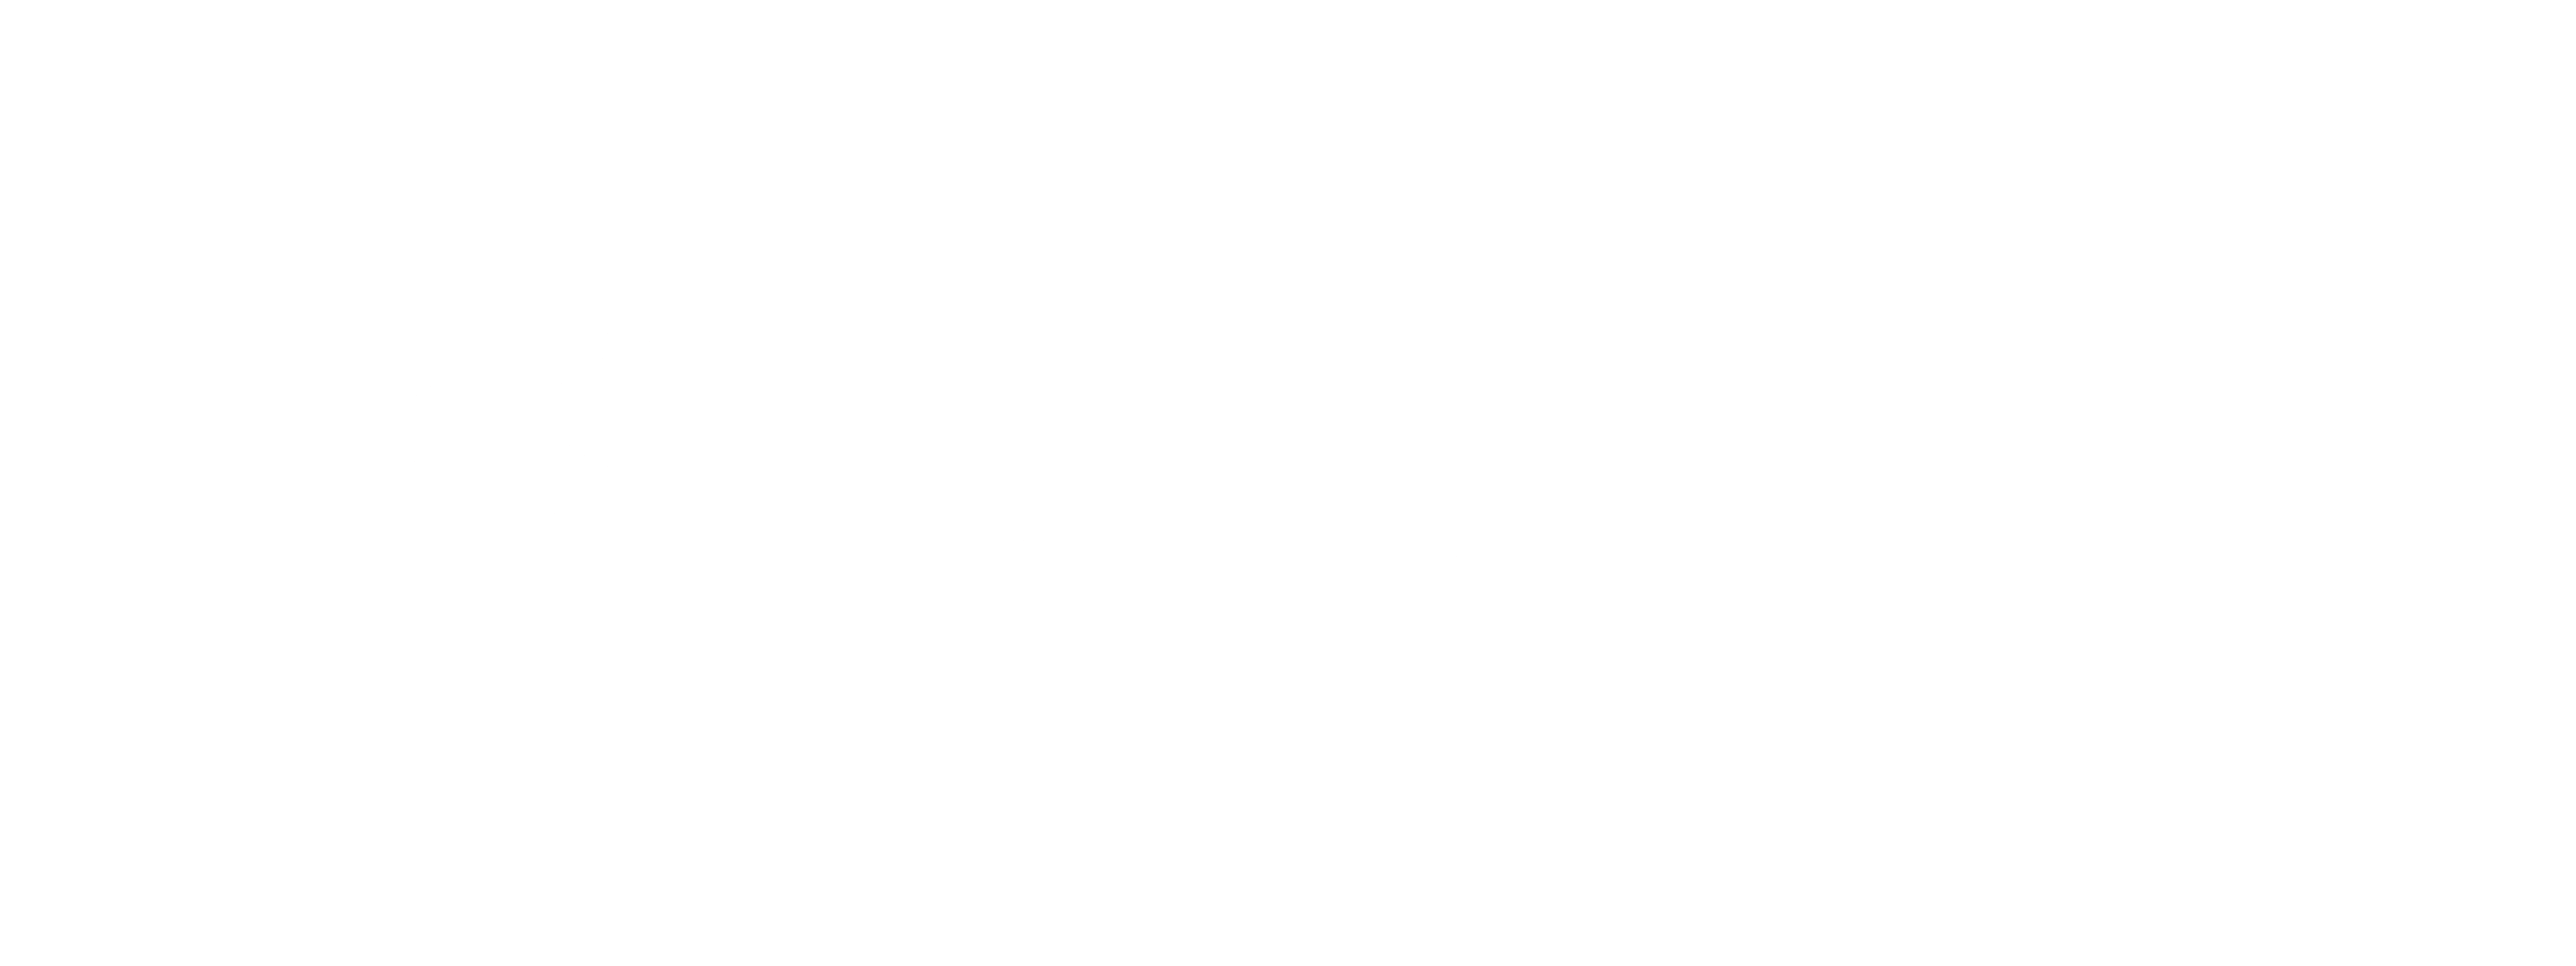 Bob's Furniture Restorations